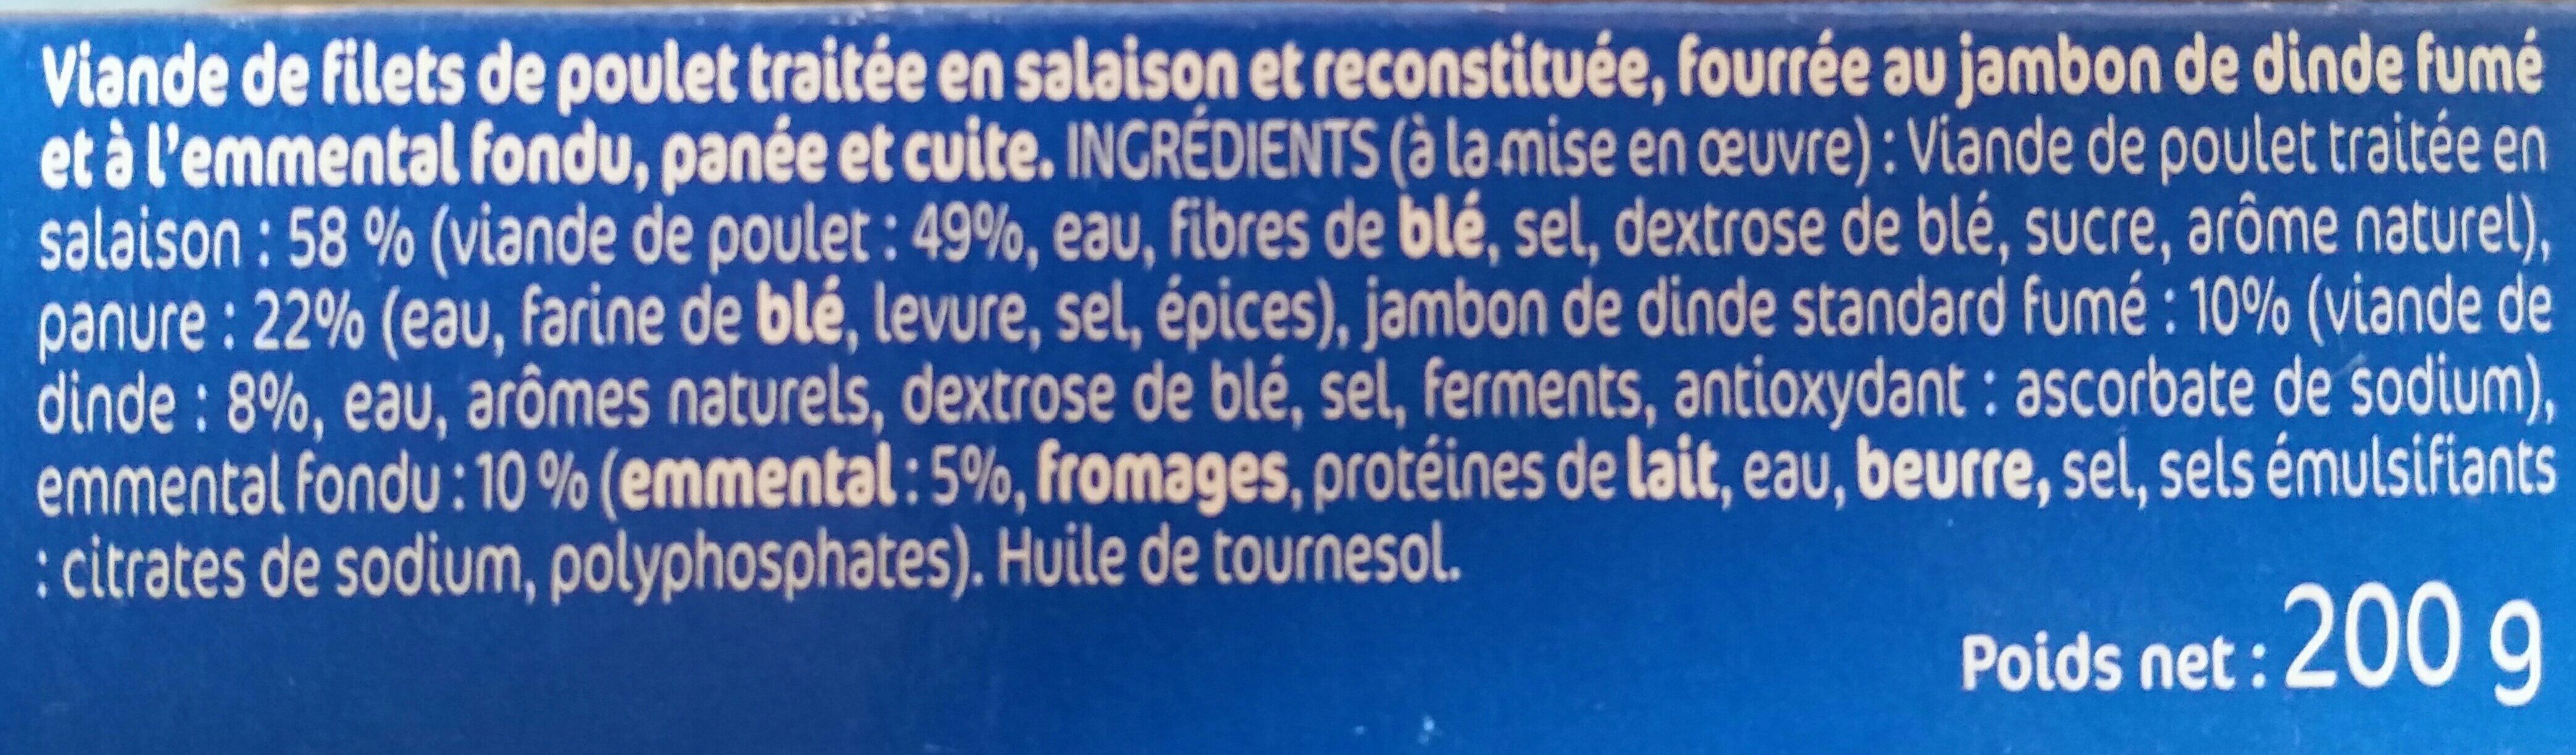 Cordon bleu - Ingredients